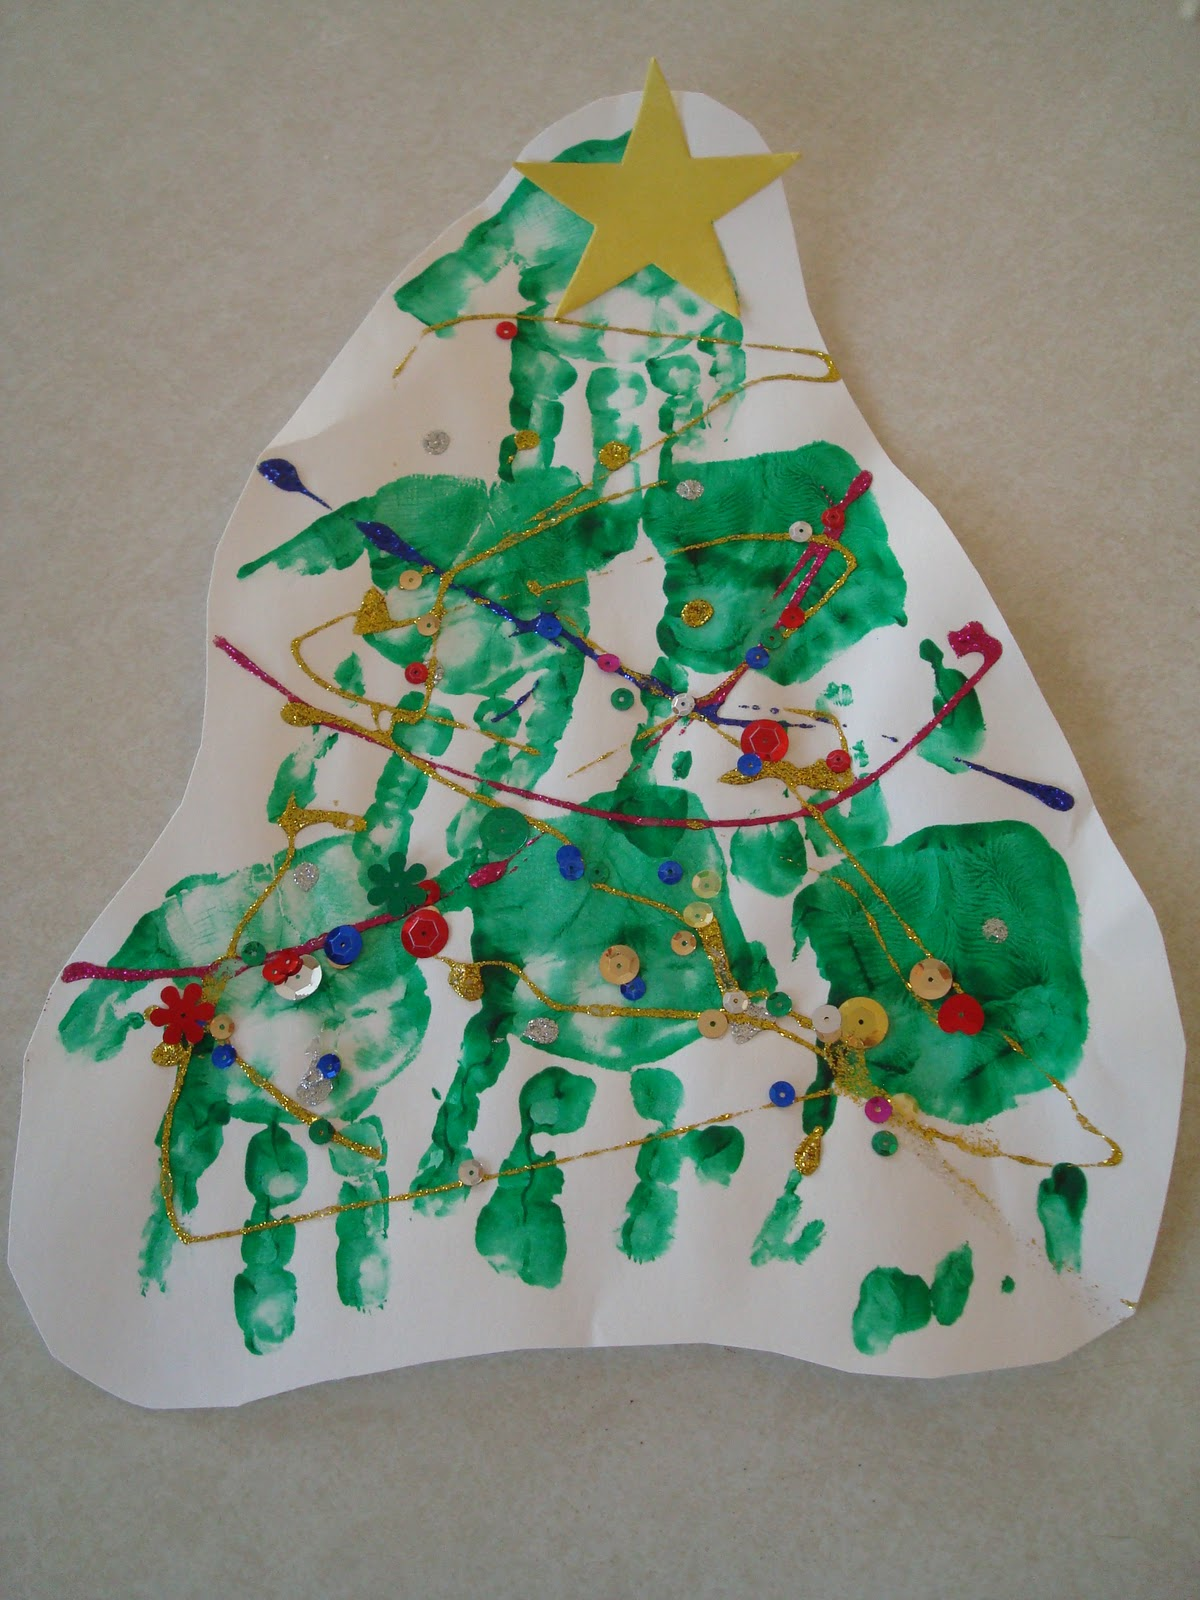 Decorate Christmas Tree On Paper : Big ideas little people paper christmas tree decorating